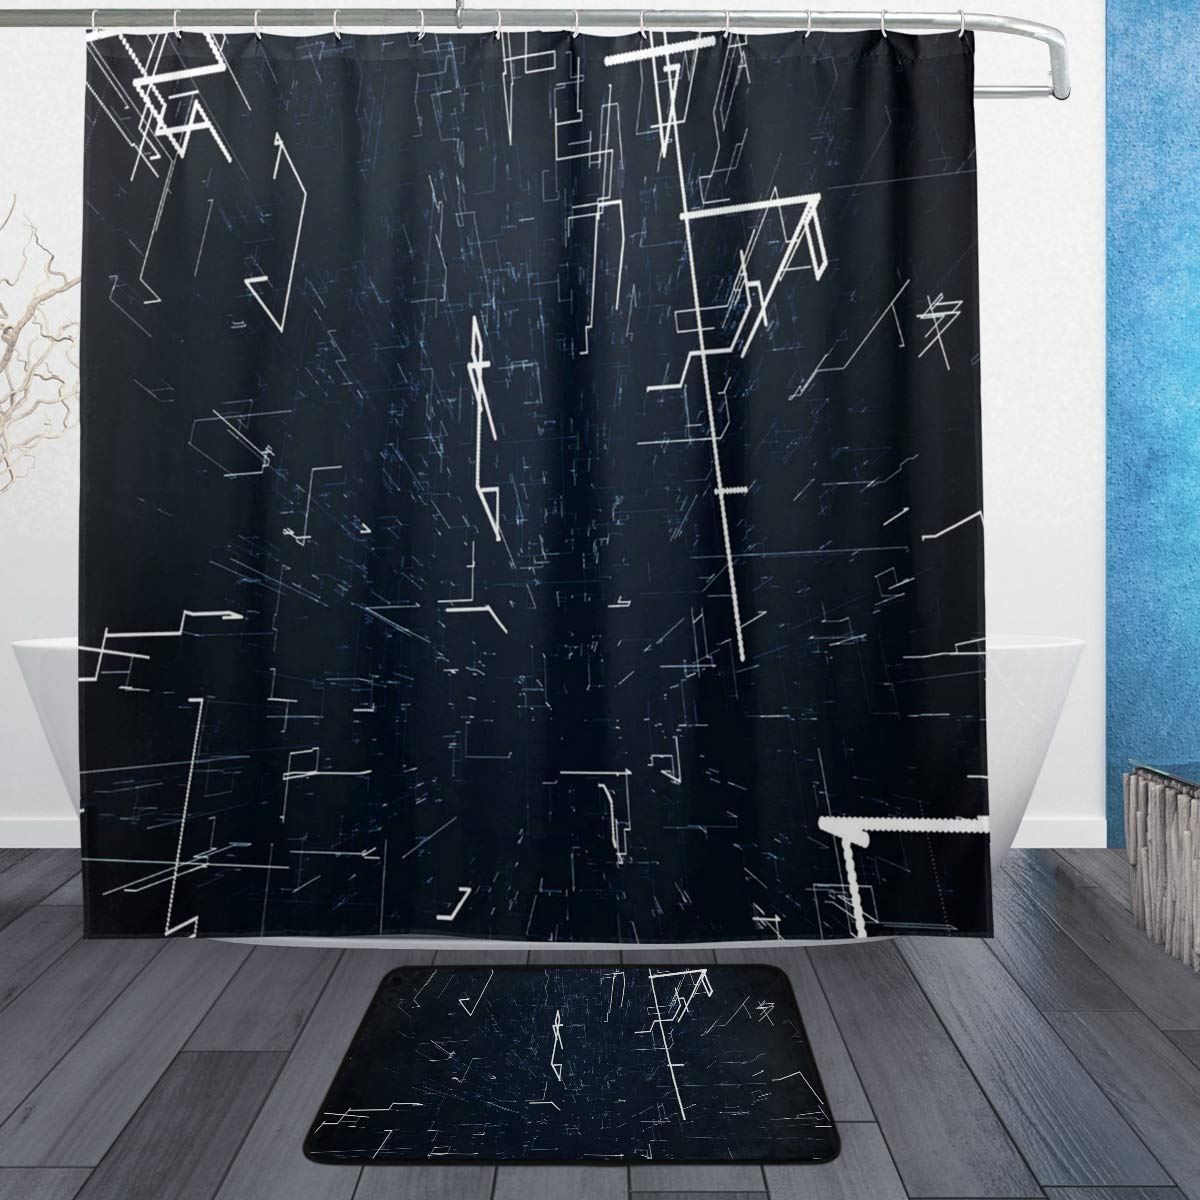 CANCAKA Motion Graphic Black Techno Shower Curtain Set with Hooks for College Dorm, Master Bathroom 66'' x 72''